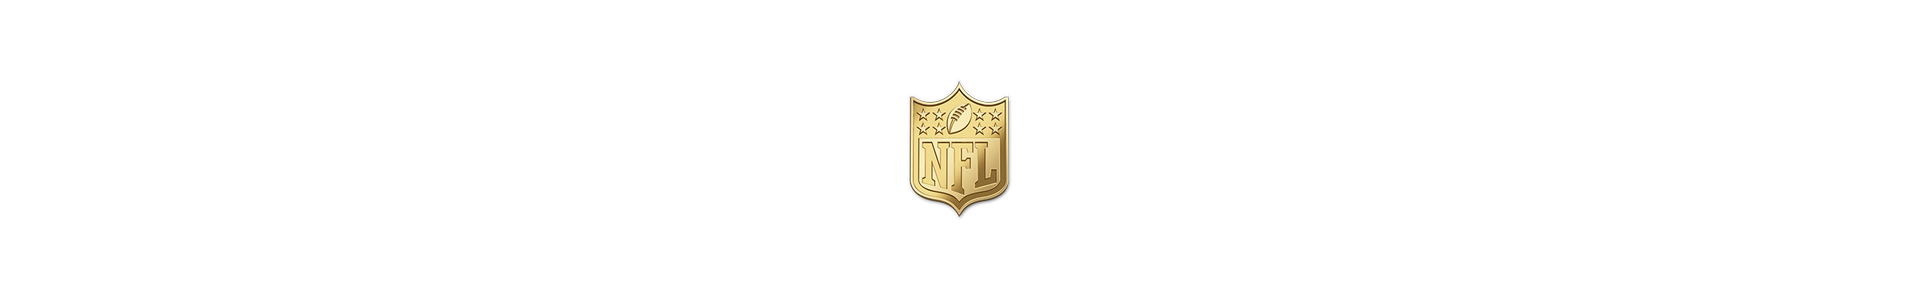 NFL_Honors_Signoff.png